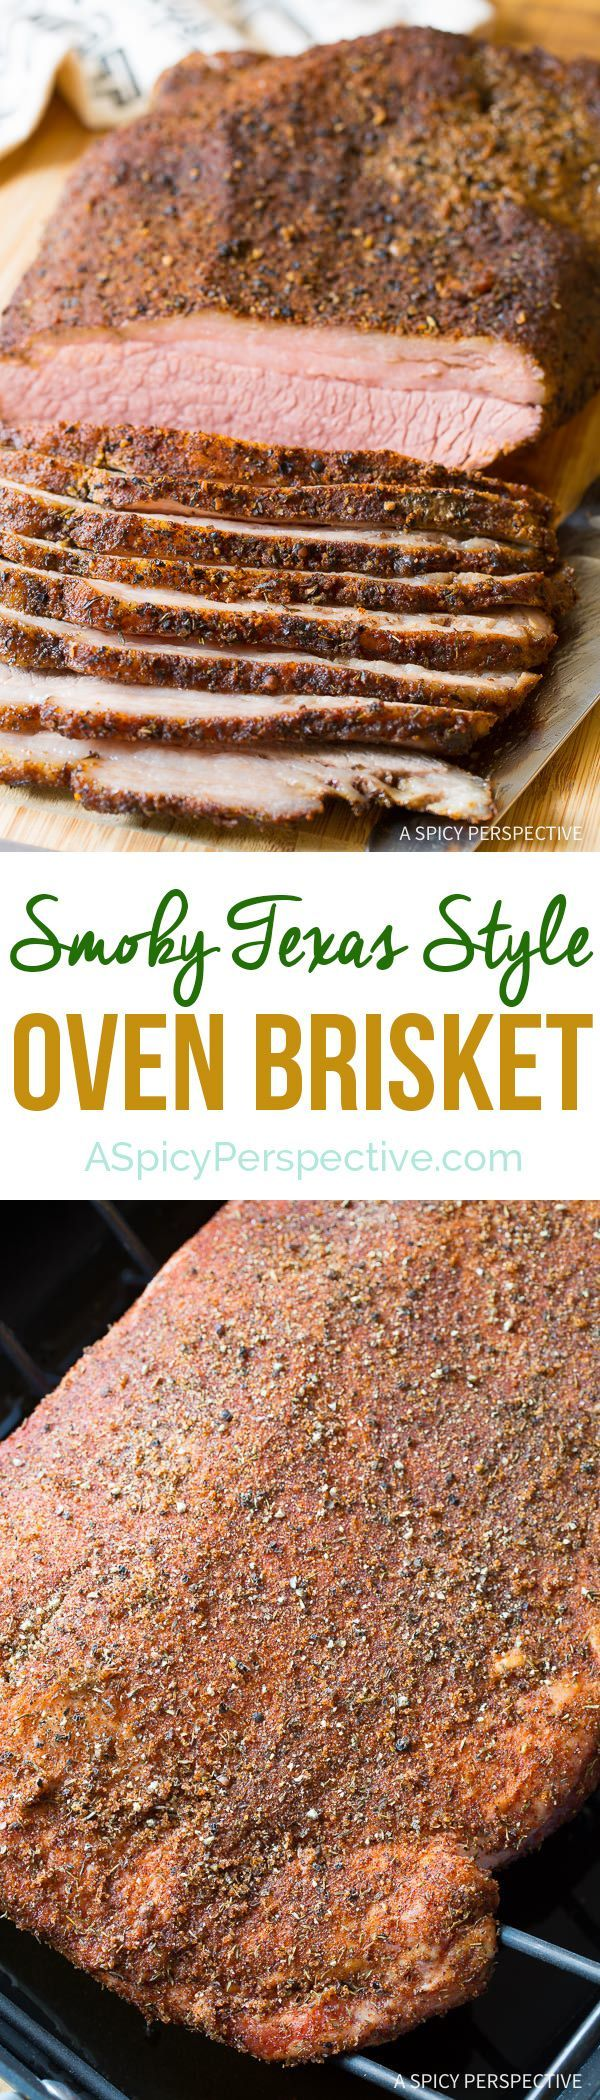 Easy Smoky Texas Style Oven Brisket Recipe on ASpicyPerspective.com - No Smoker Required! via @spicyperspectiv